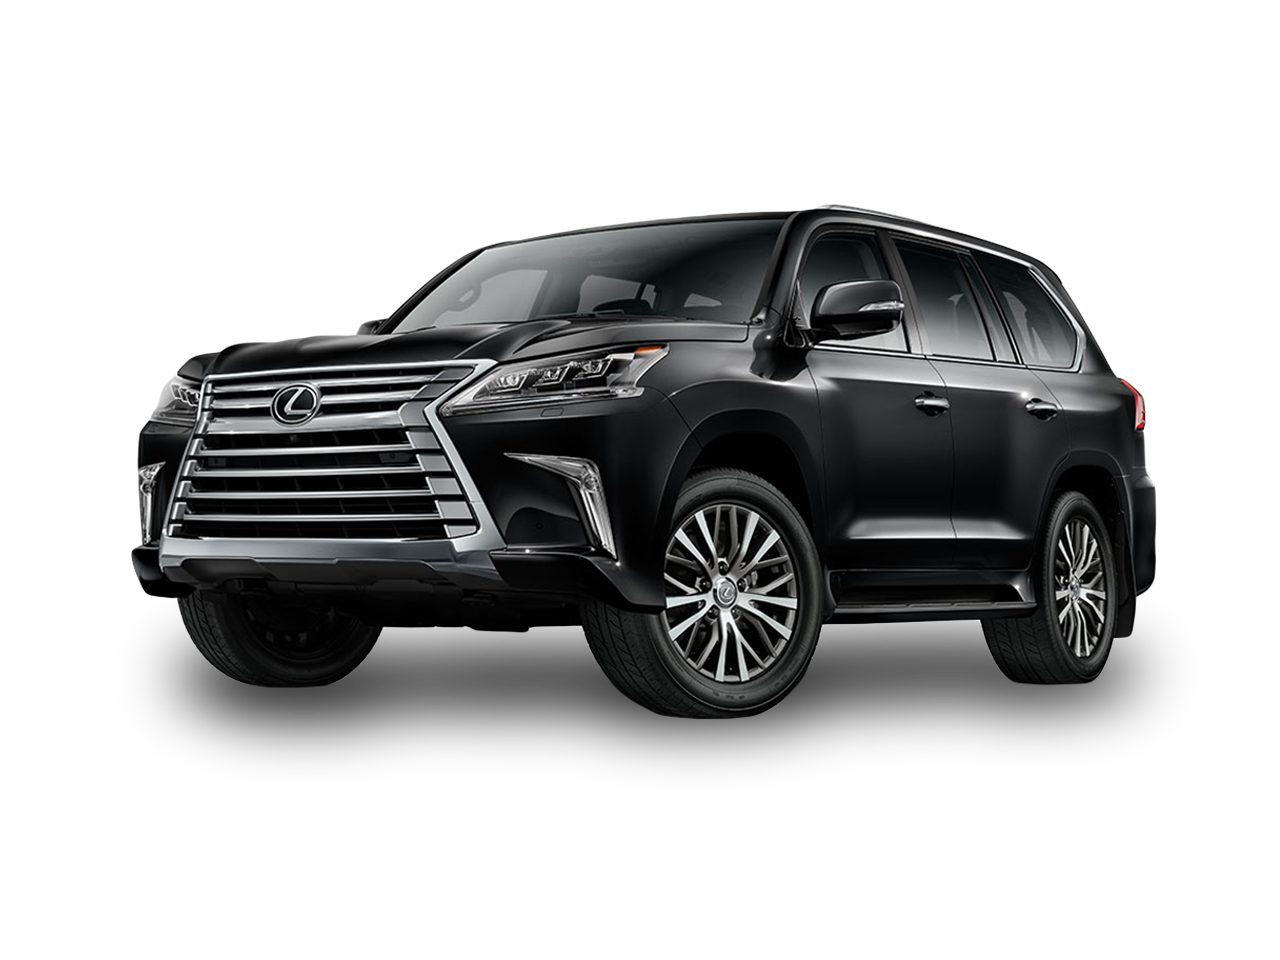 High Quality 2019 Lexus LX